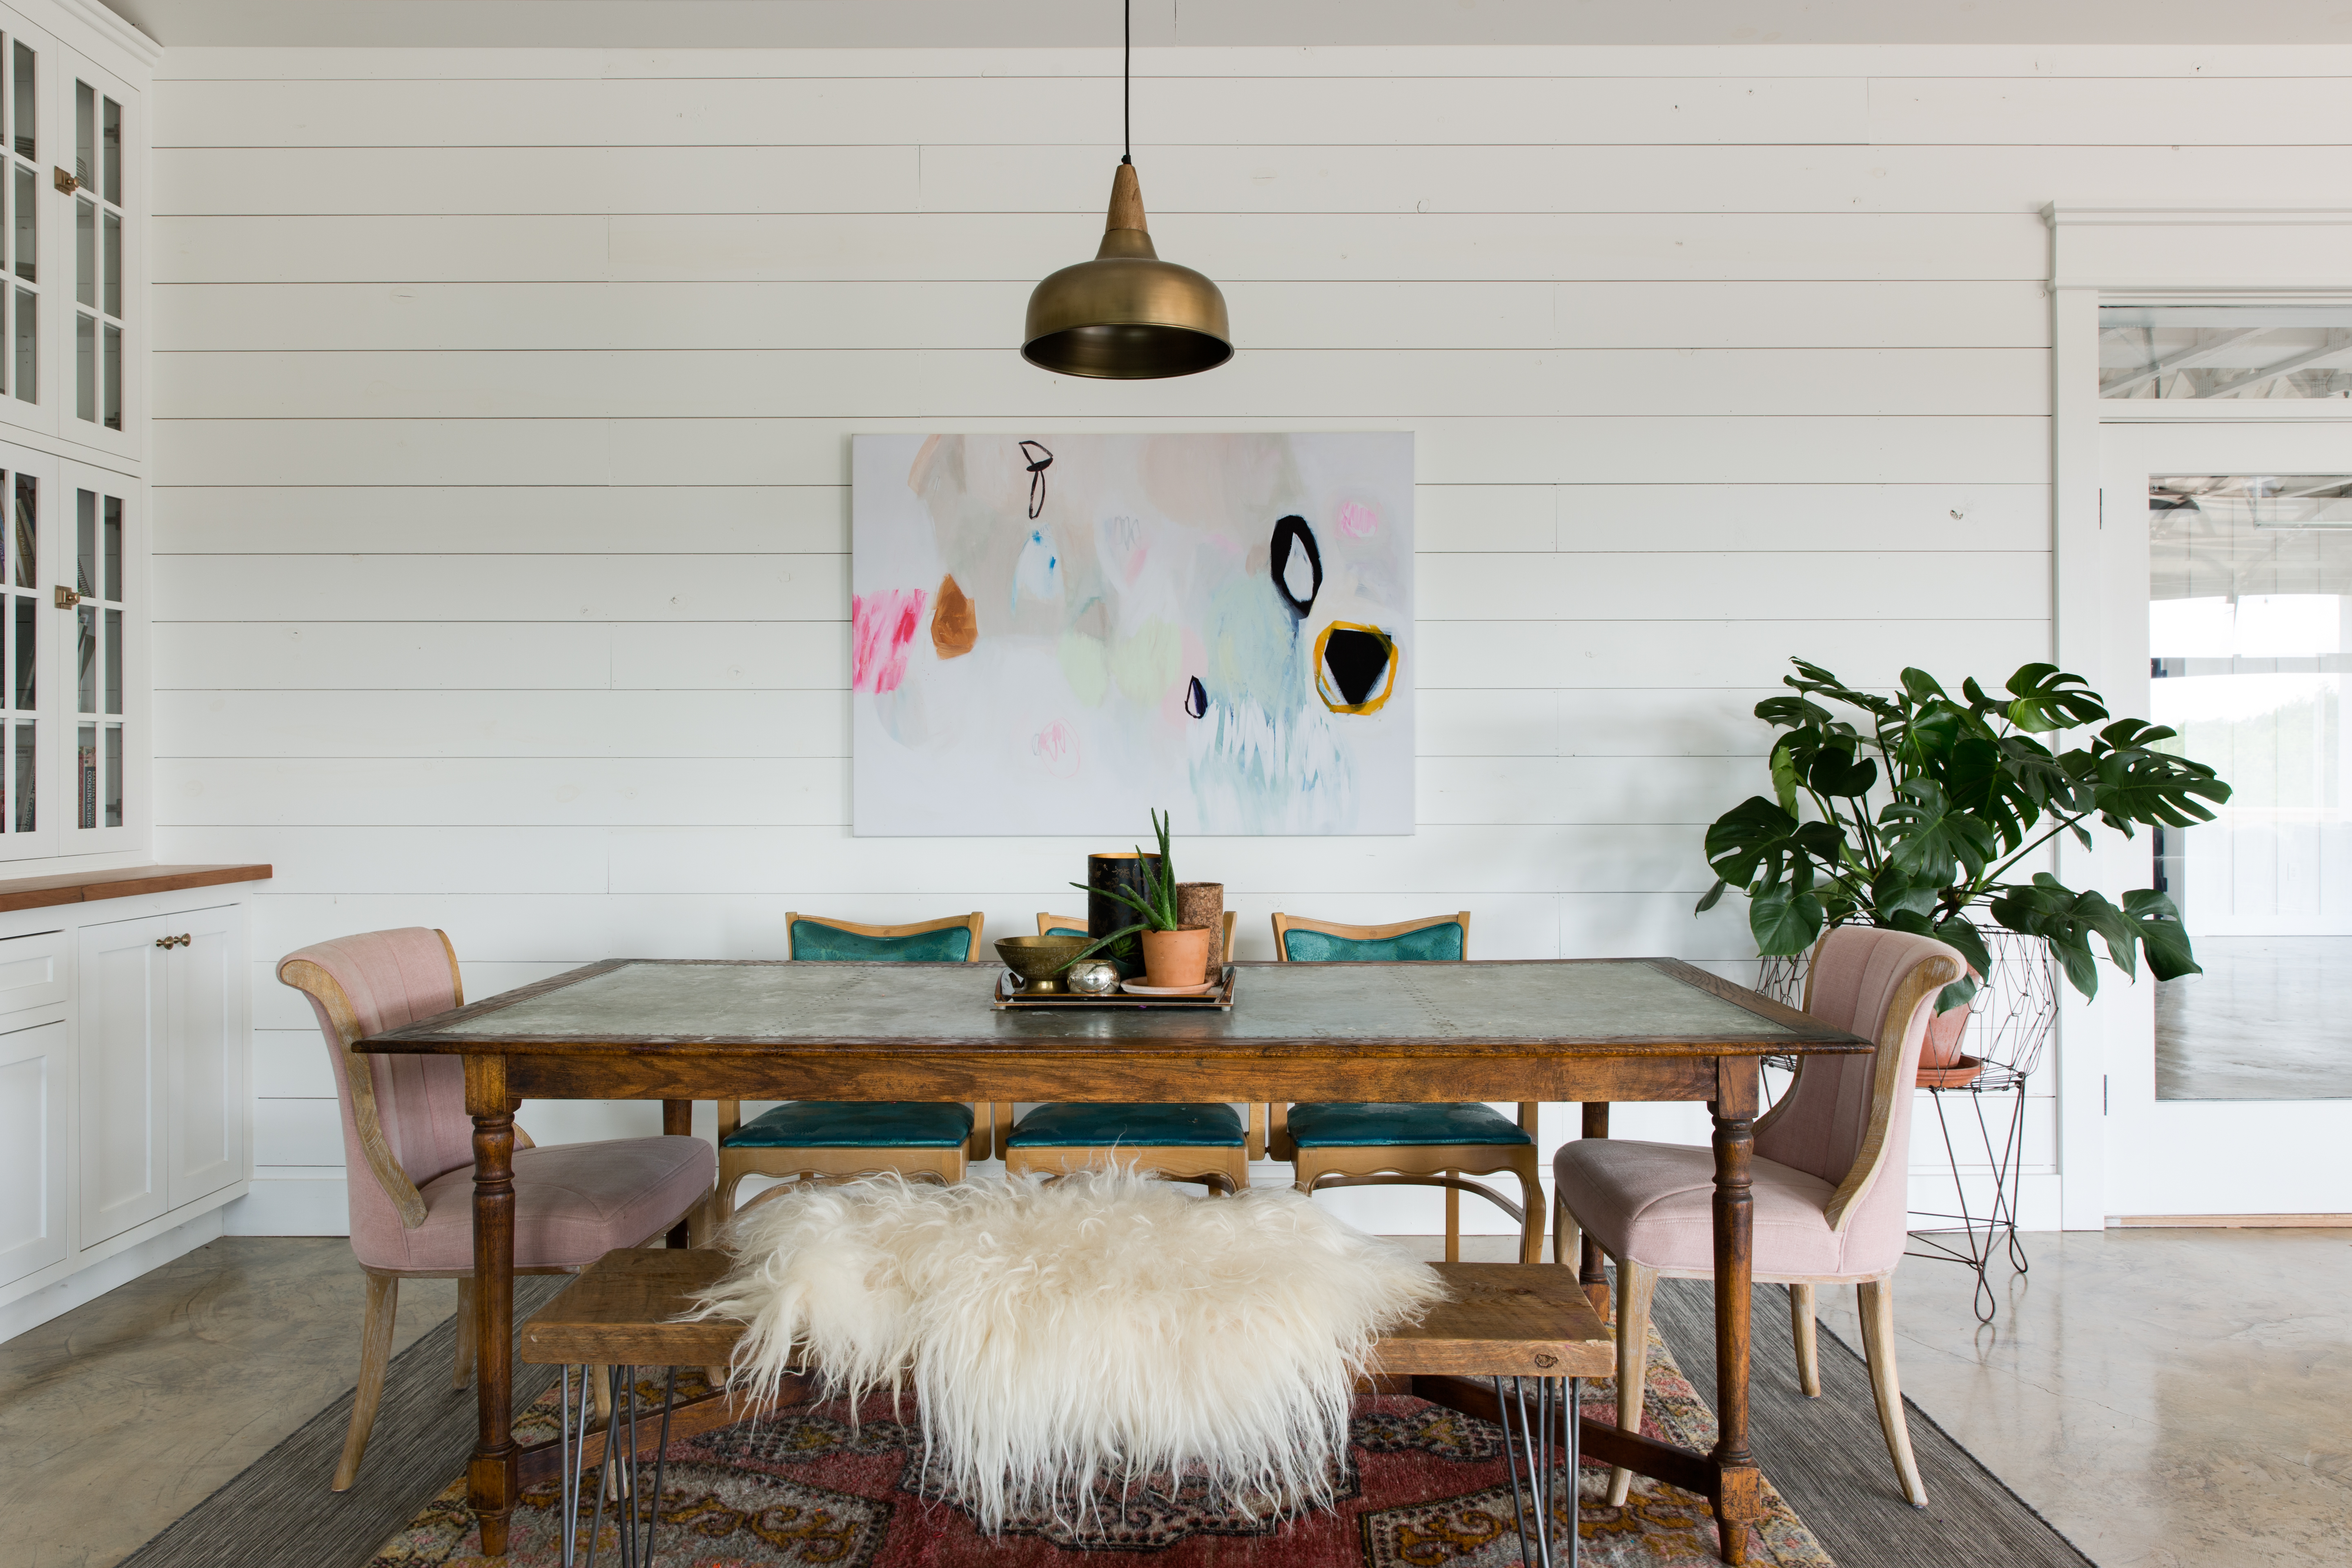 Swell Get The Look Of This Layered Rustic Glam Dining Room Machost Co Dining Chair Design Ideas Machostcouk